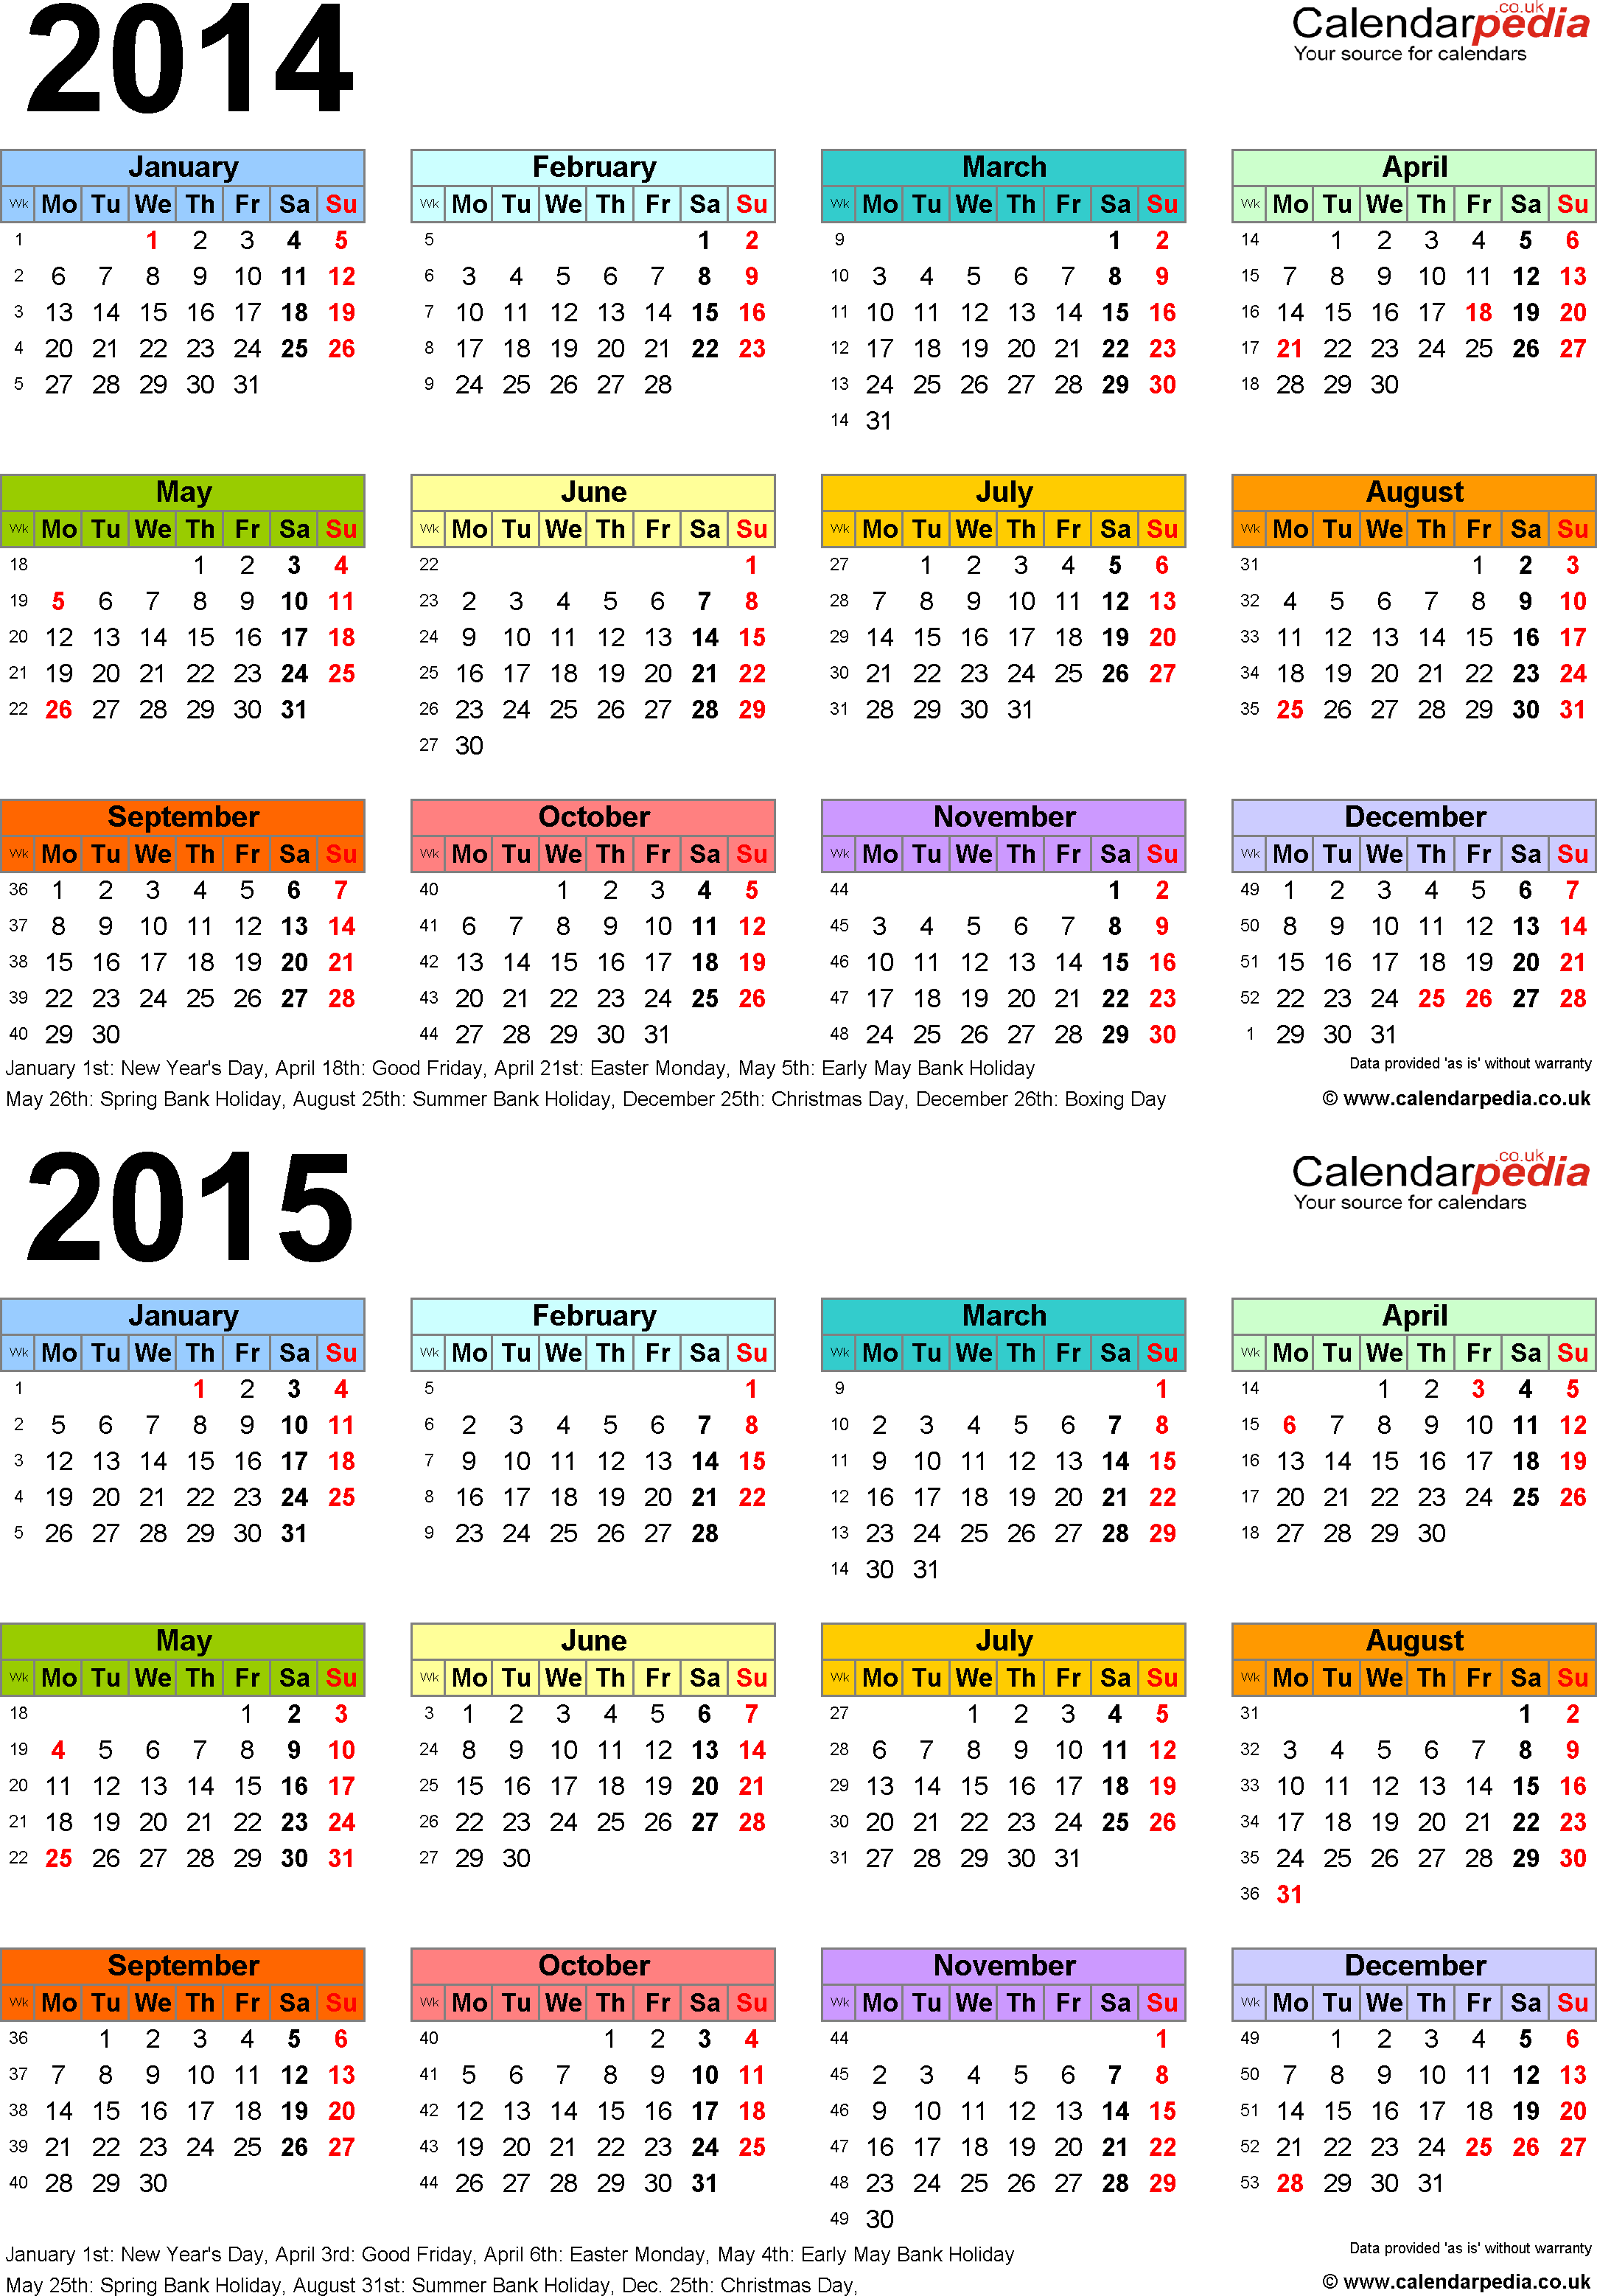 Template 3: PDF template for two year calendar 2014/2015 in colour (portrait orientation, 1 page, A4)